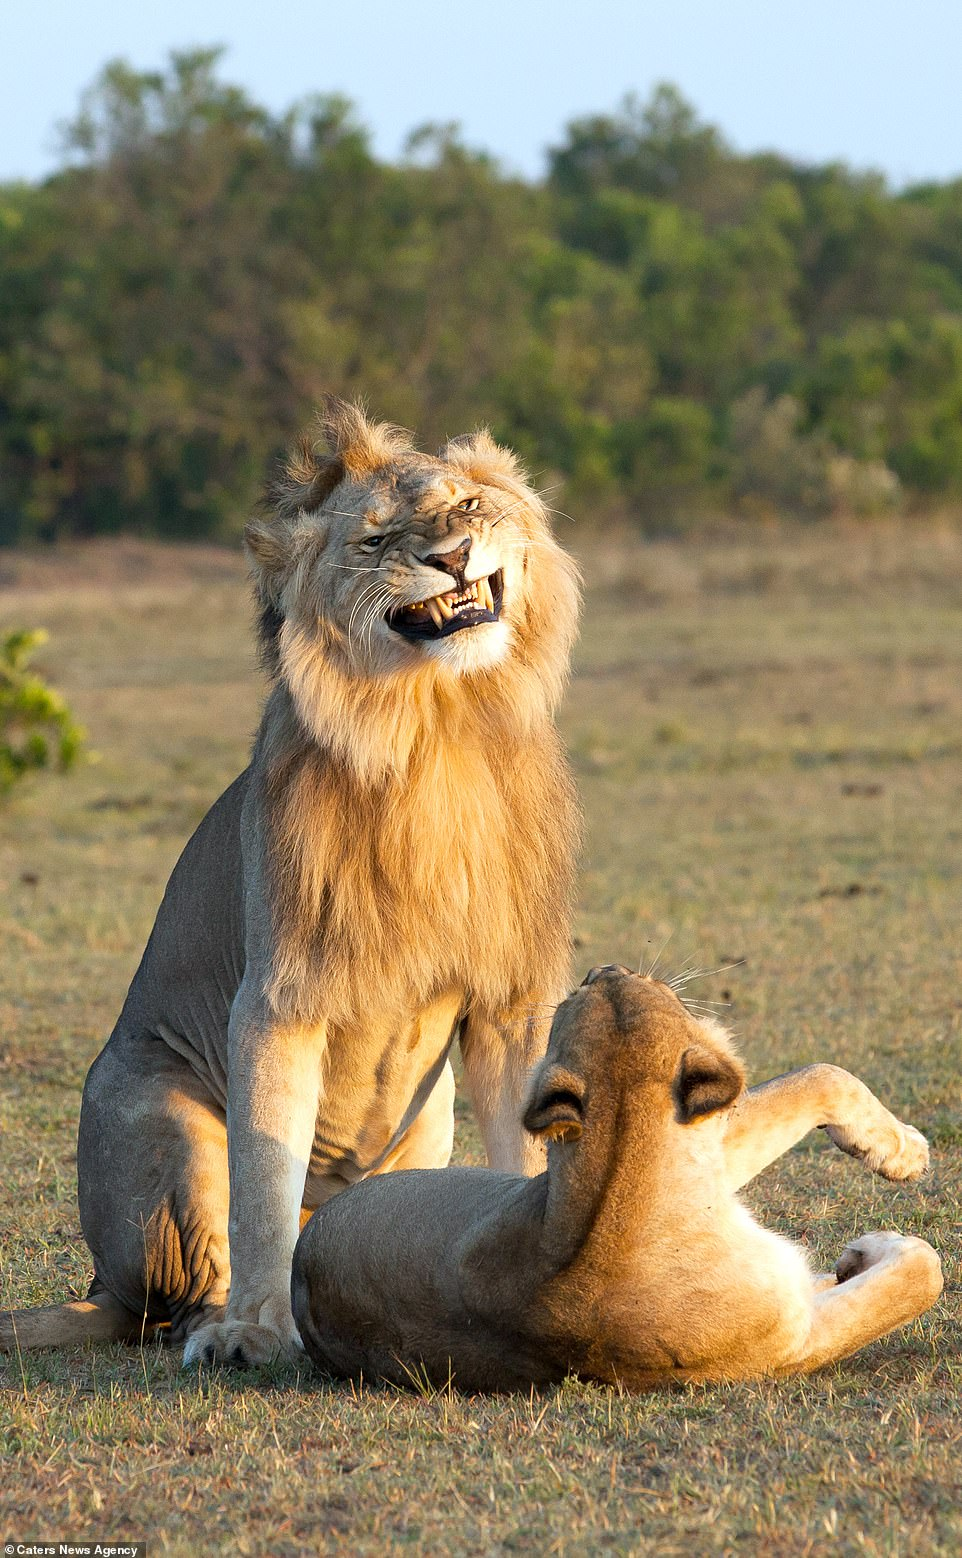 The lion bears its teeth as it sits at the rear of the lioness on the grassy plains of the Maasai Mara National Reserve in Kenya; although mating itself takes only a few seconds, it is repeated about every 20 minutes